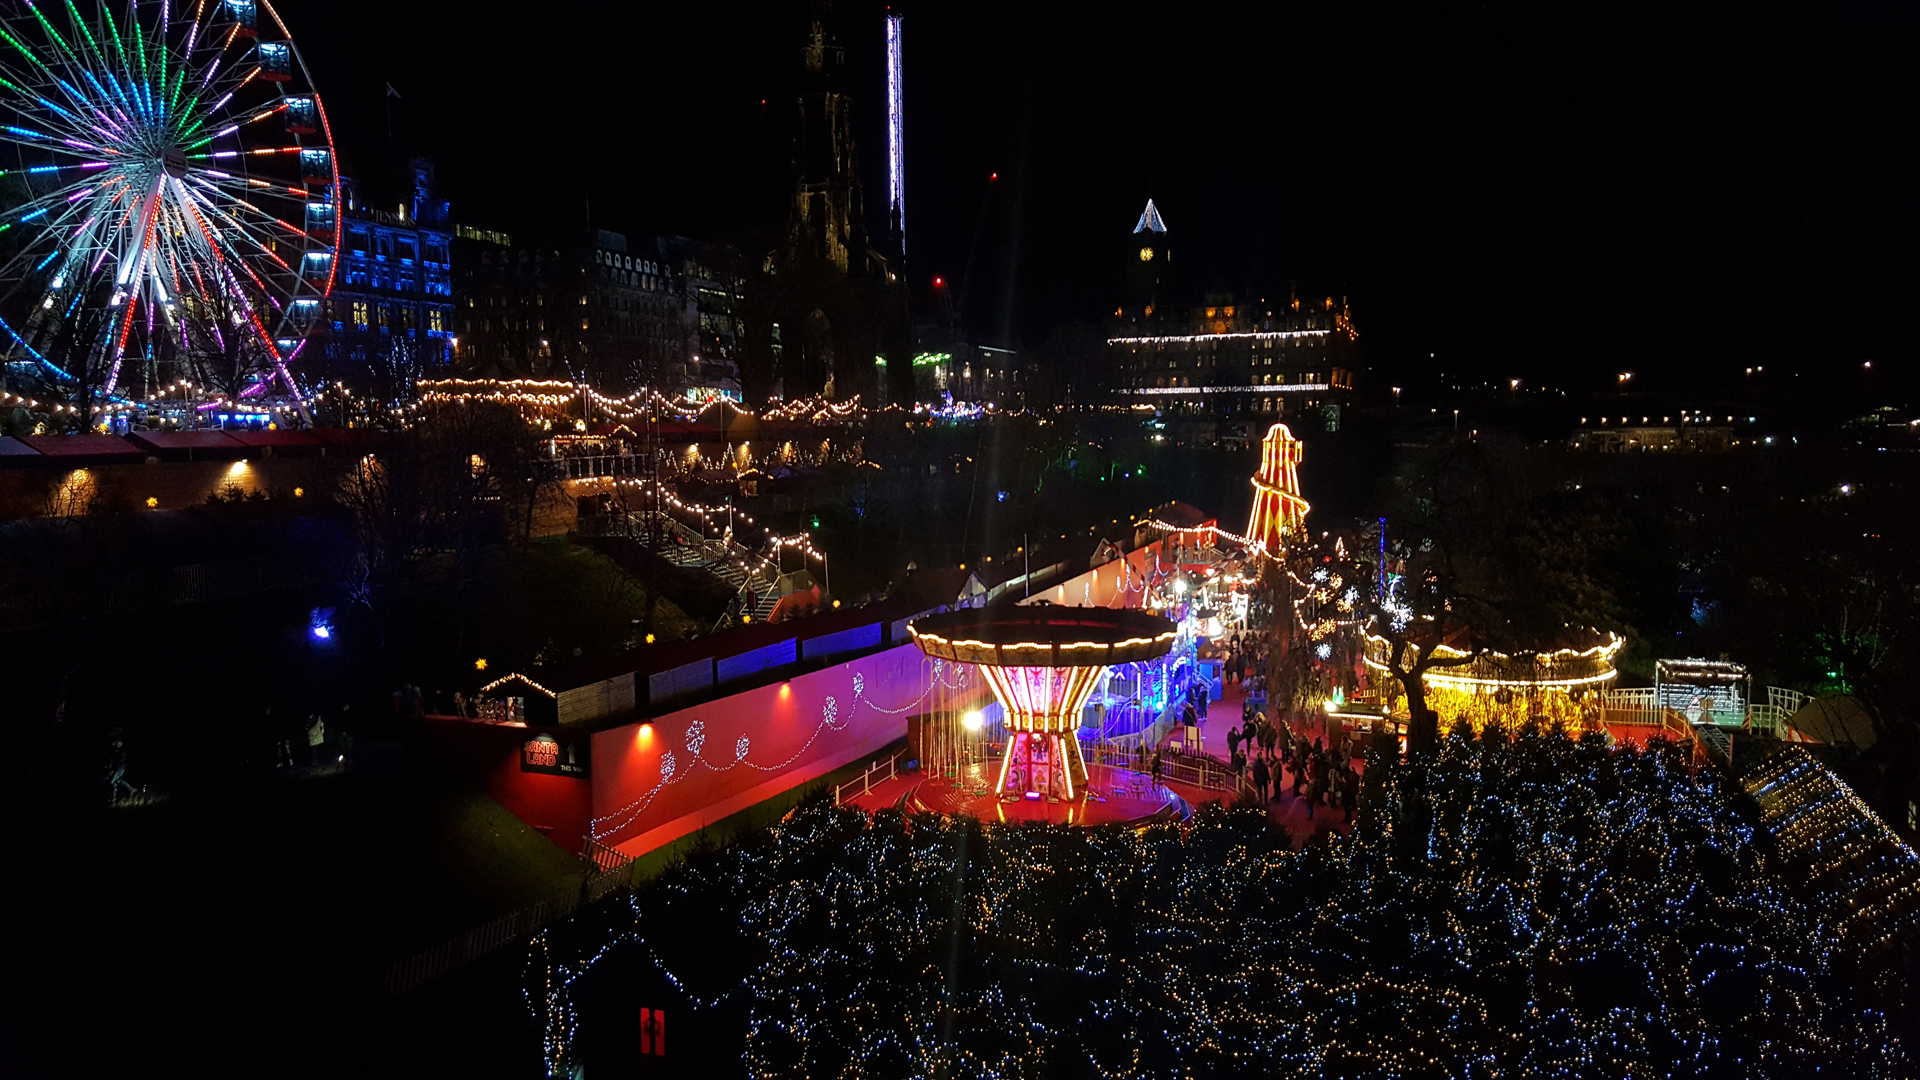 A view looking down and across The Edinburgh Christmas market in Princes Gardens.